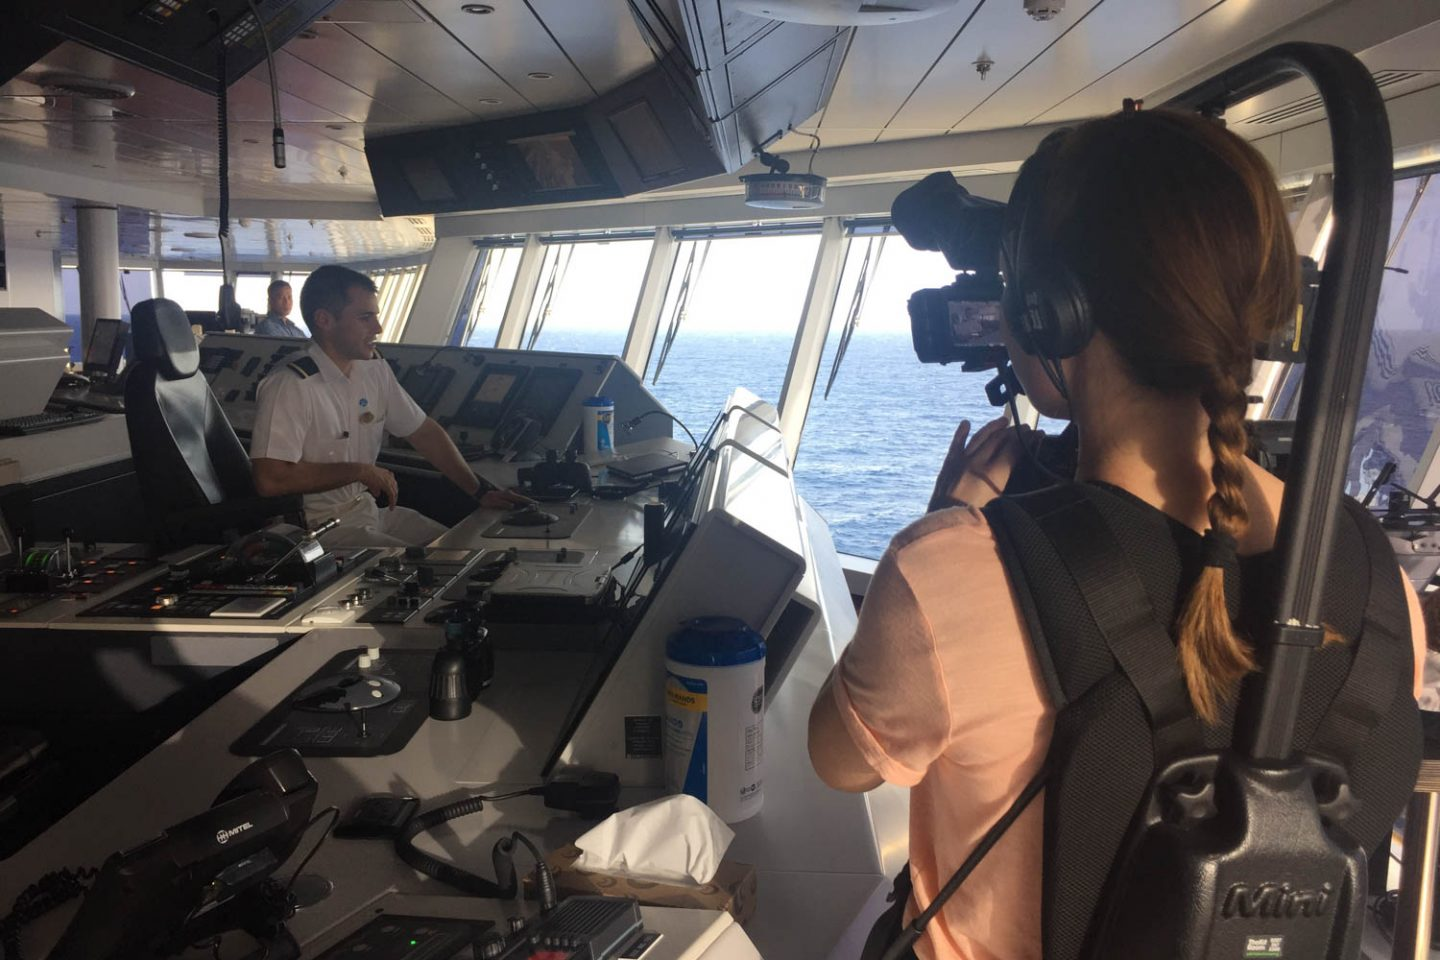 Behind the scenes filming of 'The Cruise' by Princess Cruises